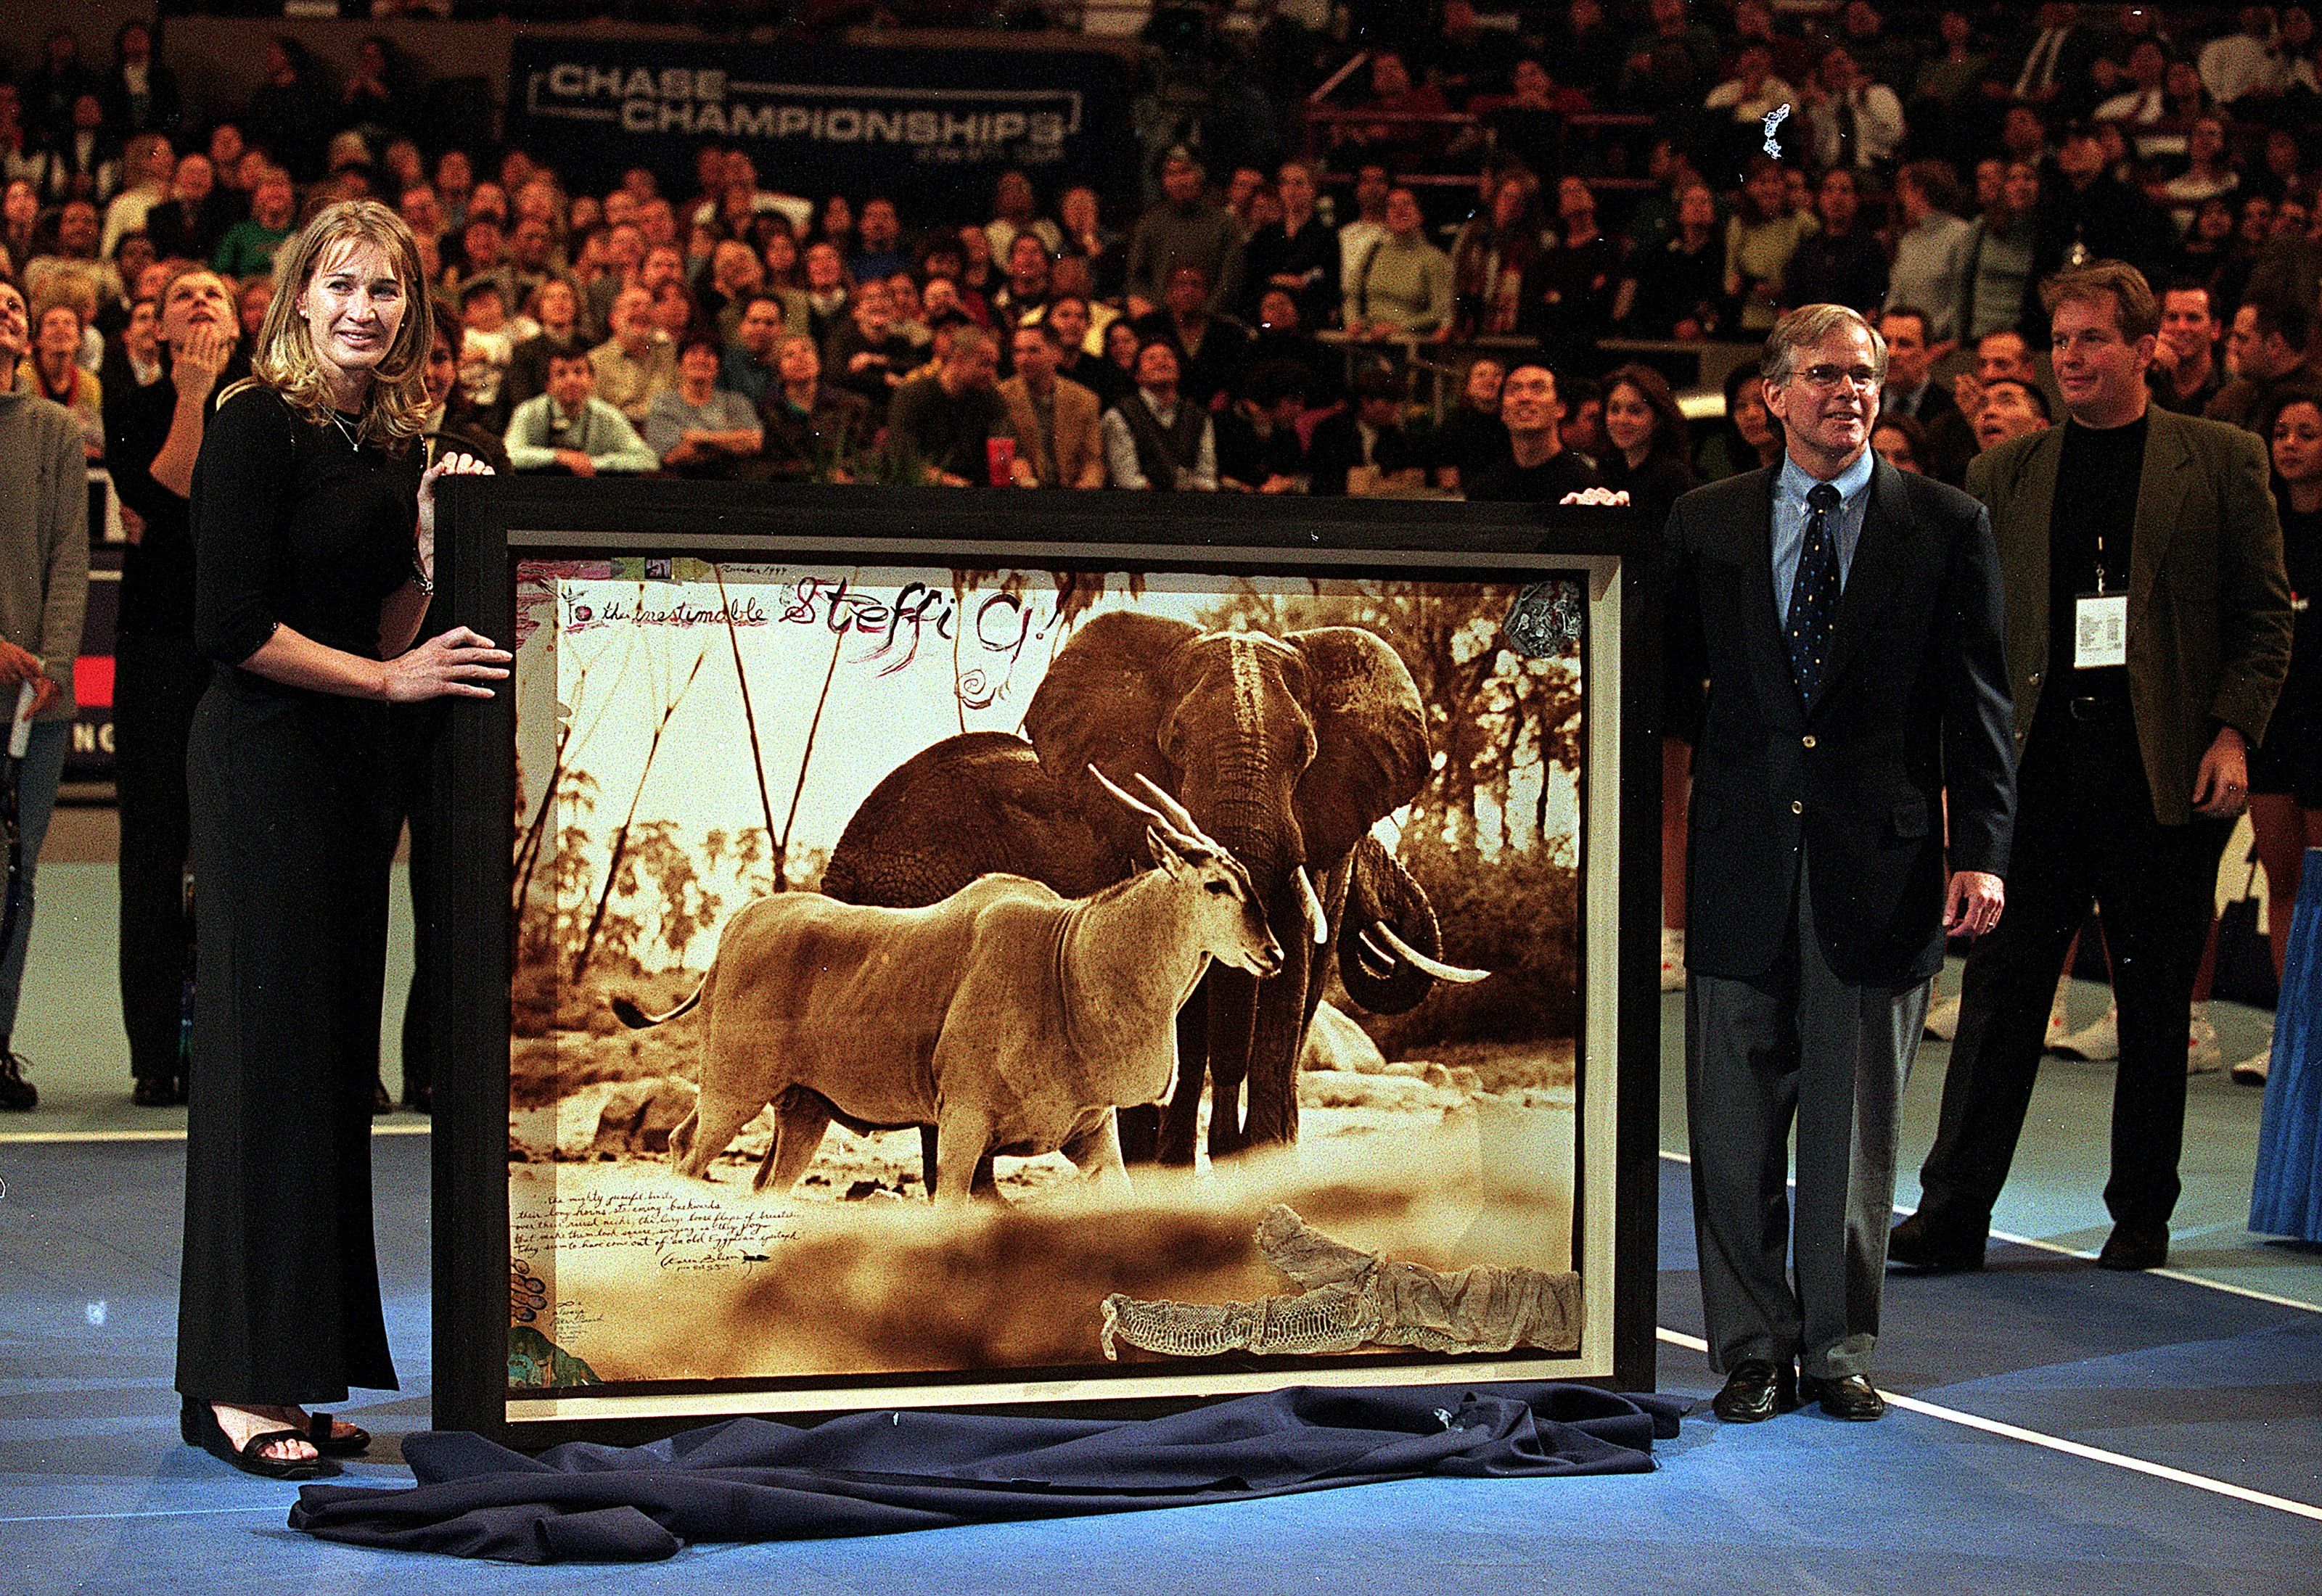 Steffi Graf hung up her racket at the 1999 tournament and received...a gift.